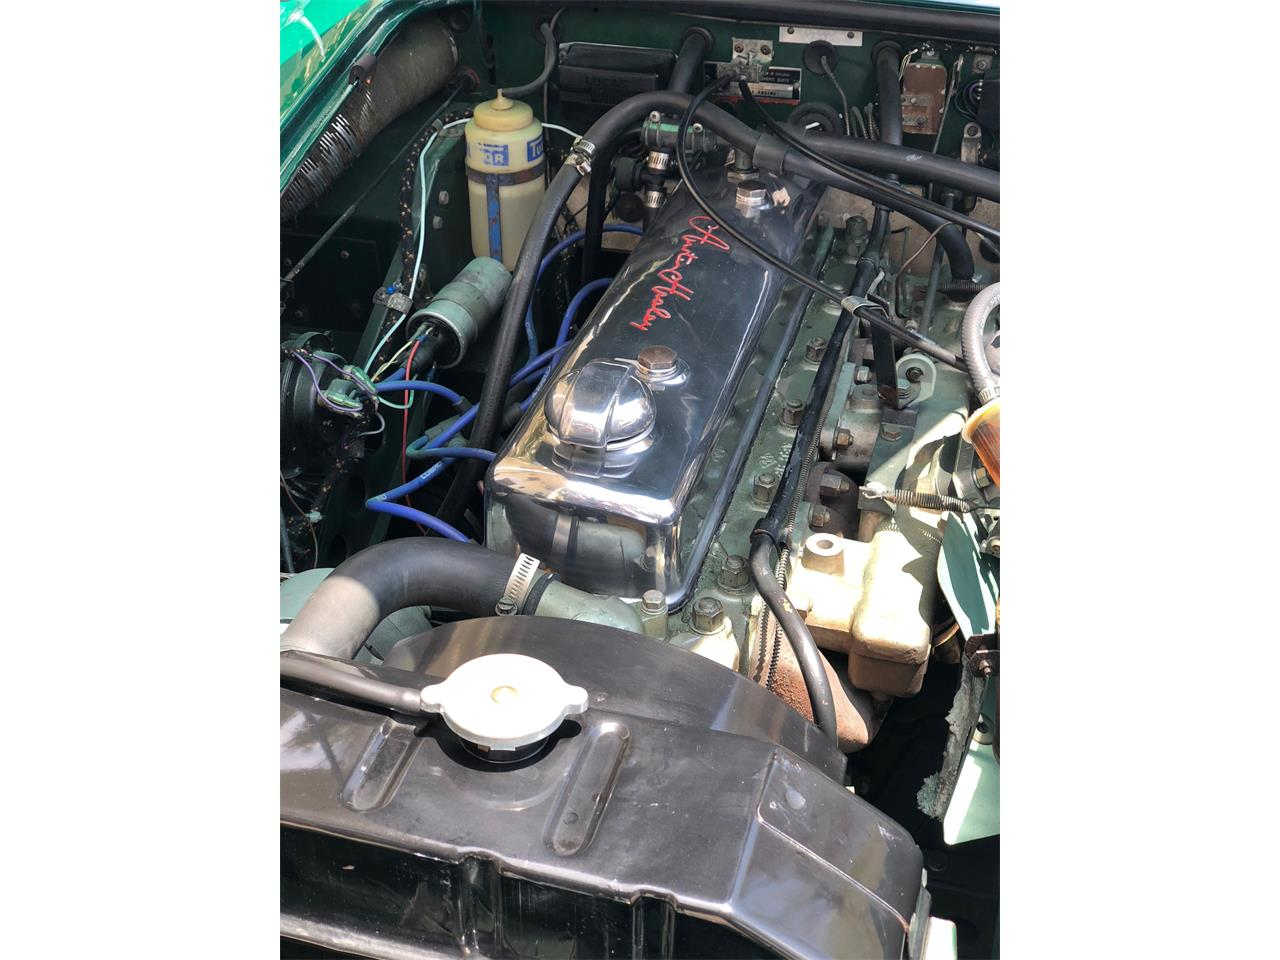 Large Picture of '67 Austin-Healey 3000 Mark III - $75,000.00 Offered by a Private Seller - NLOV